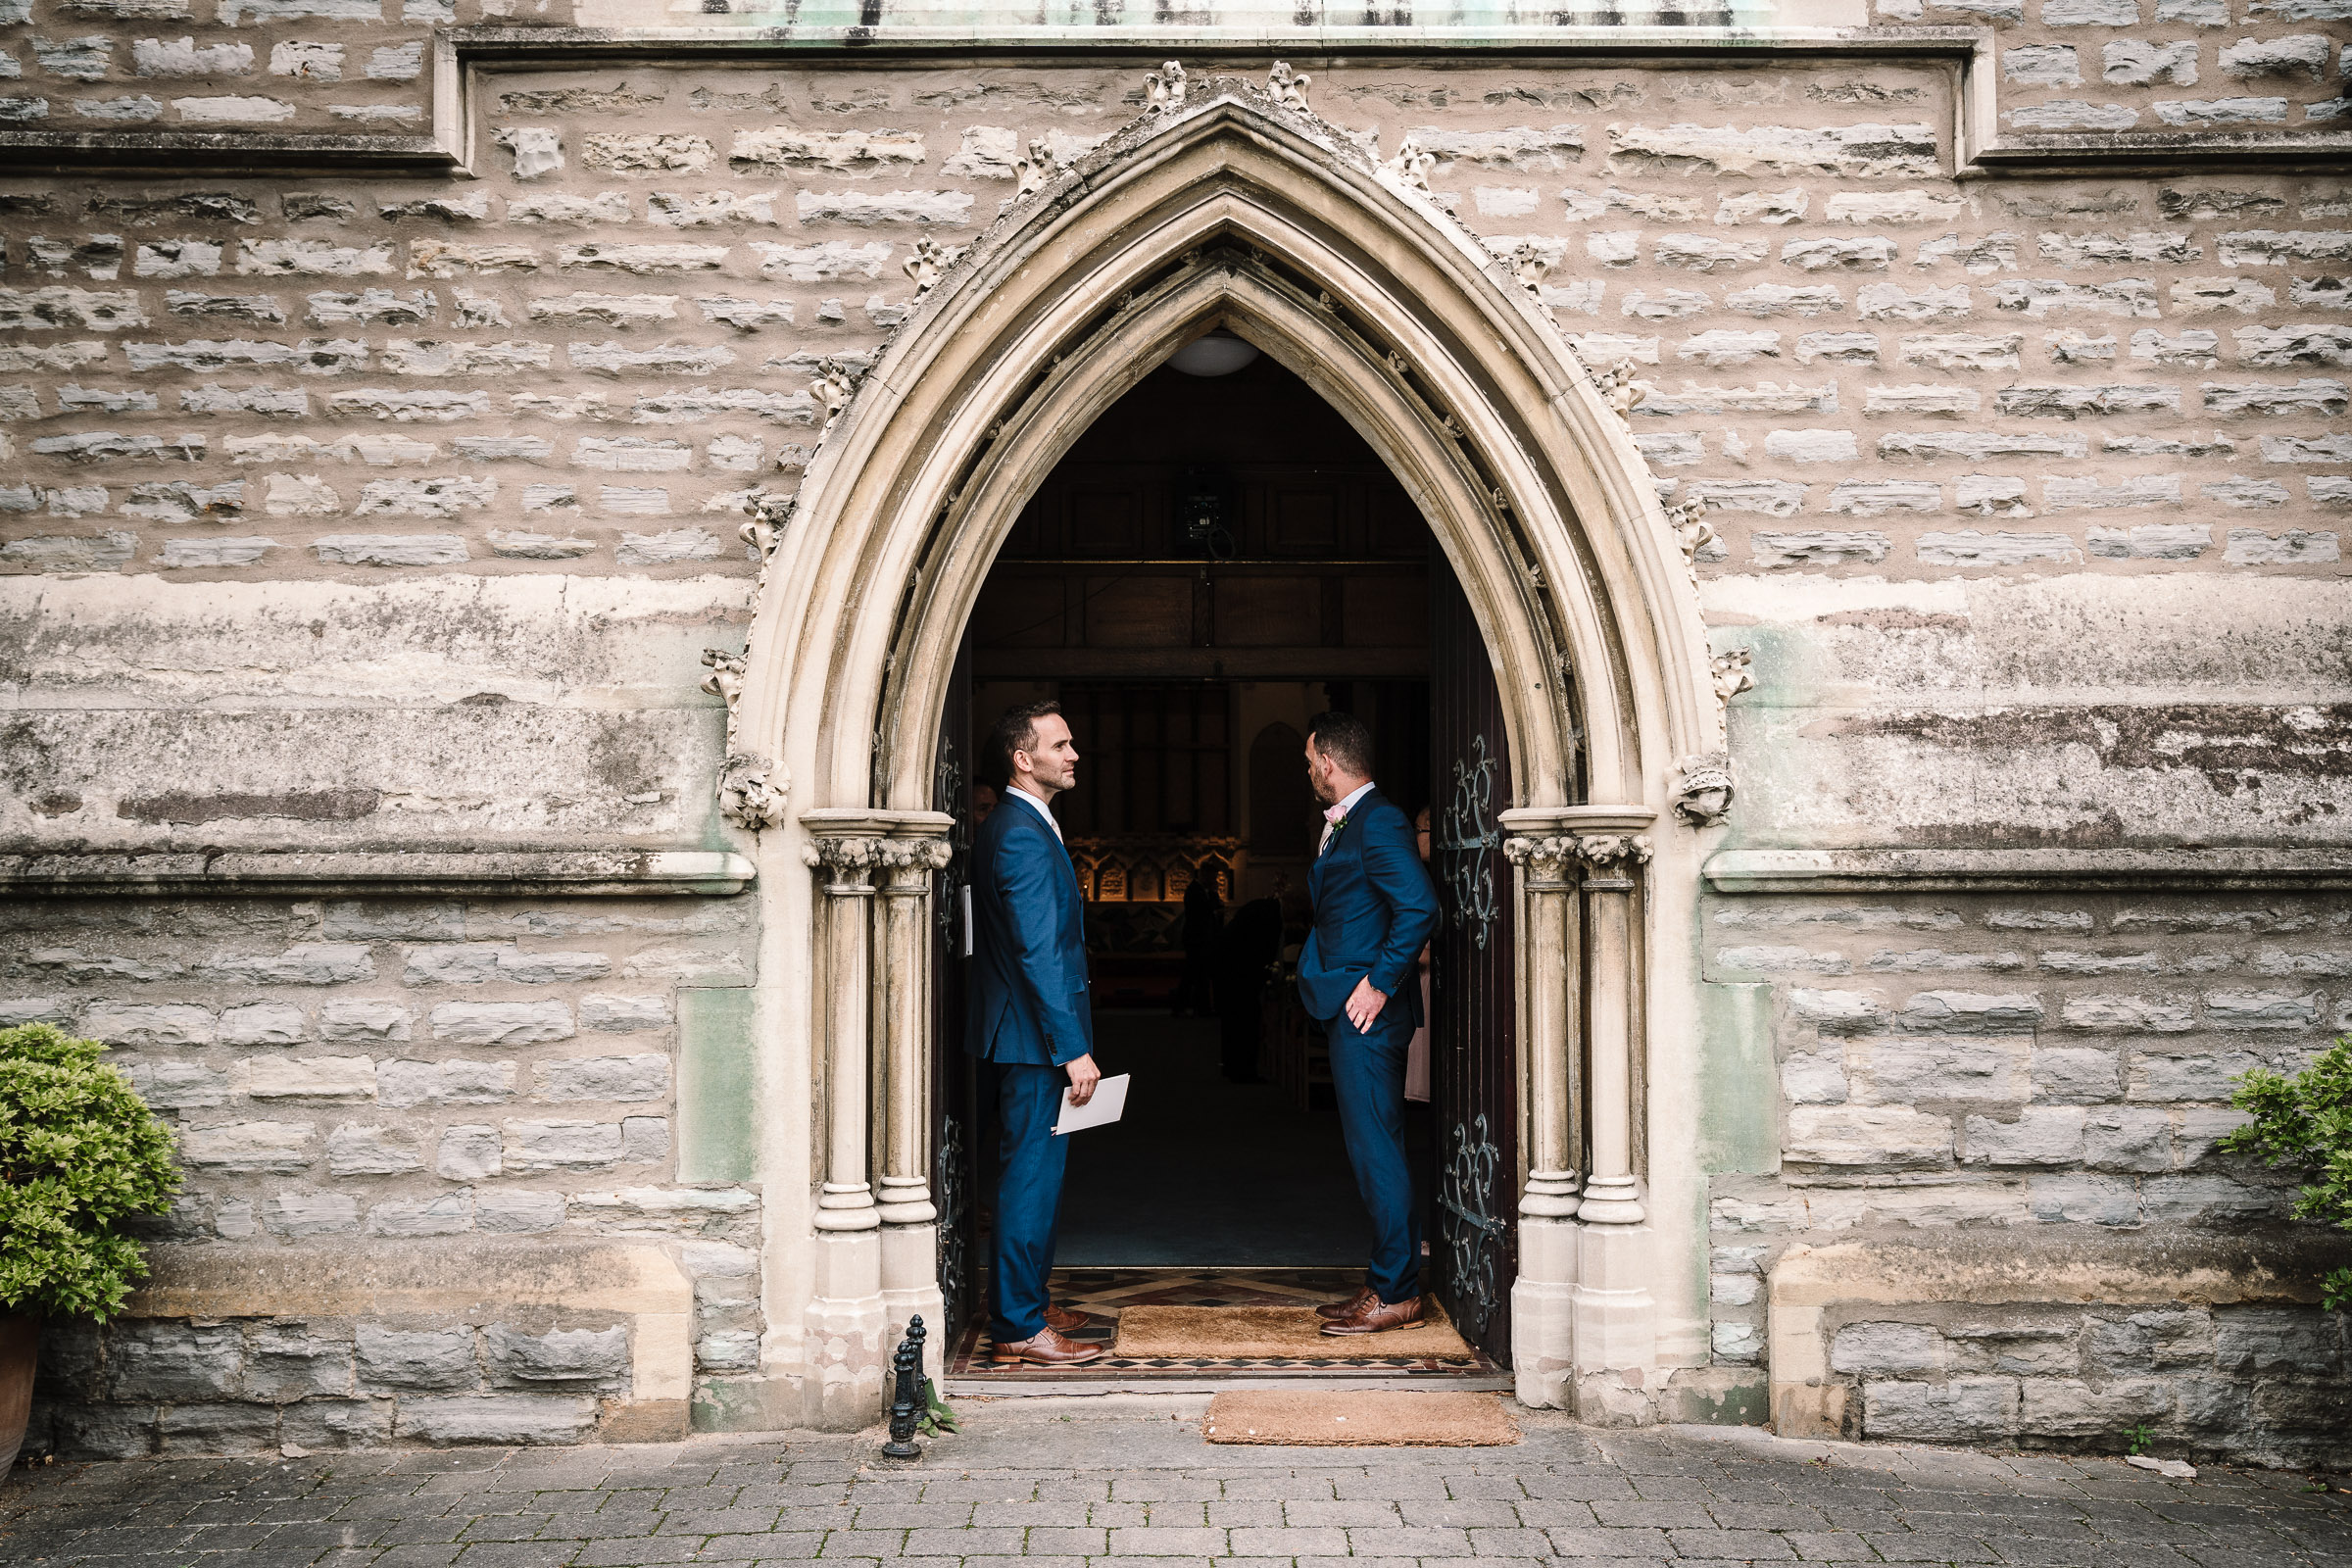 groomsmen waiting in the church entrance for guests